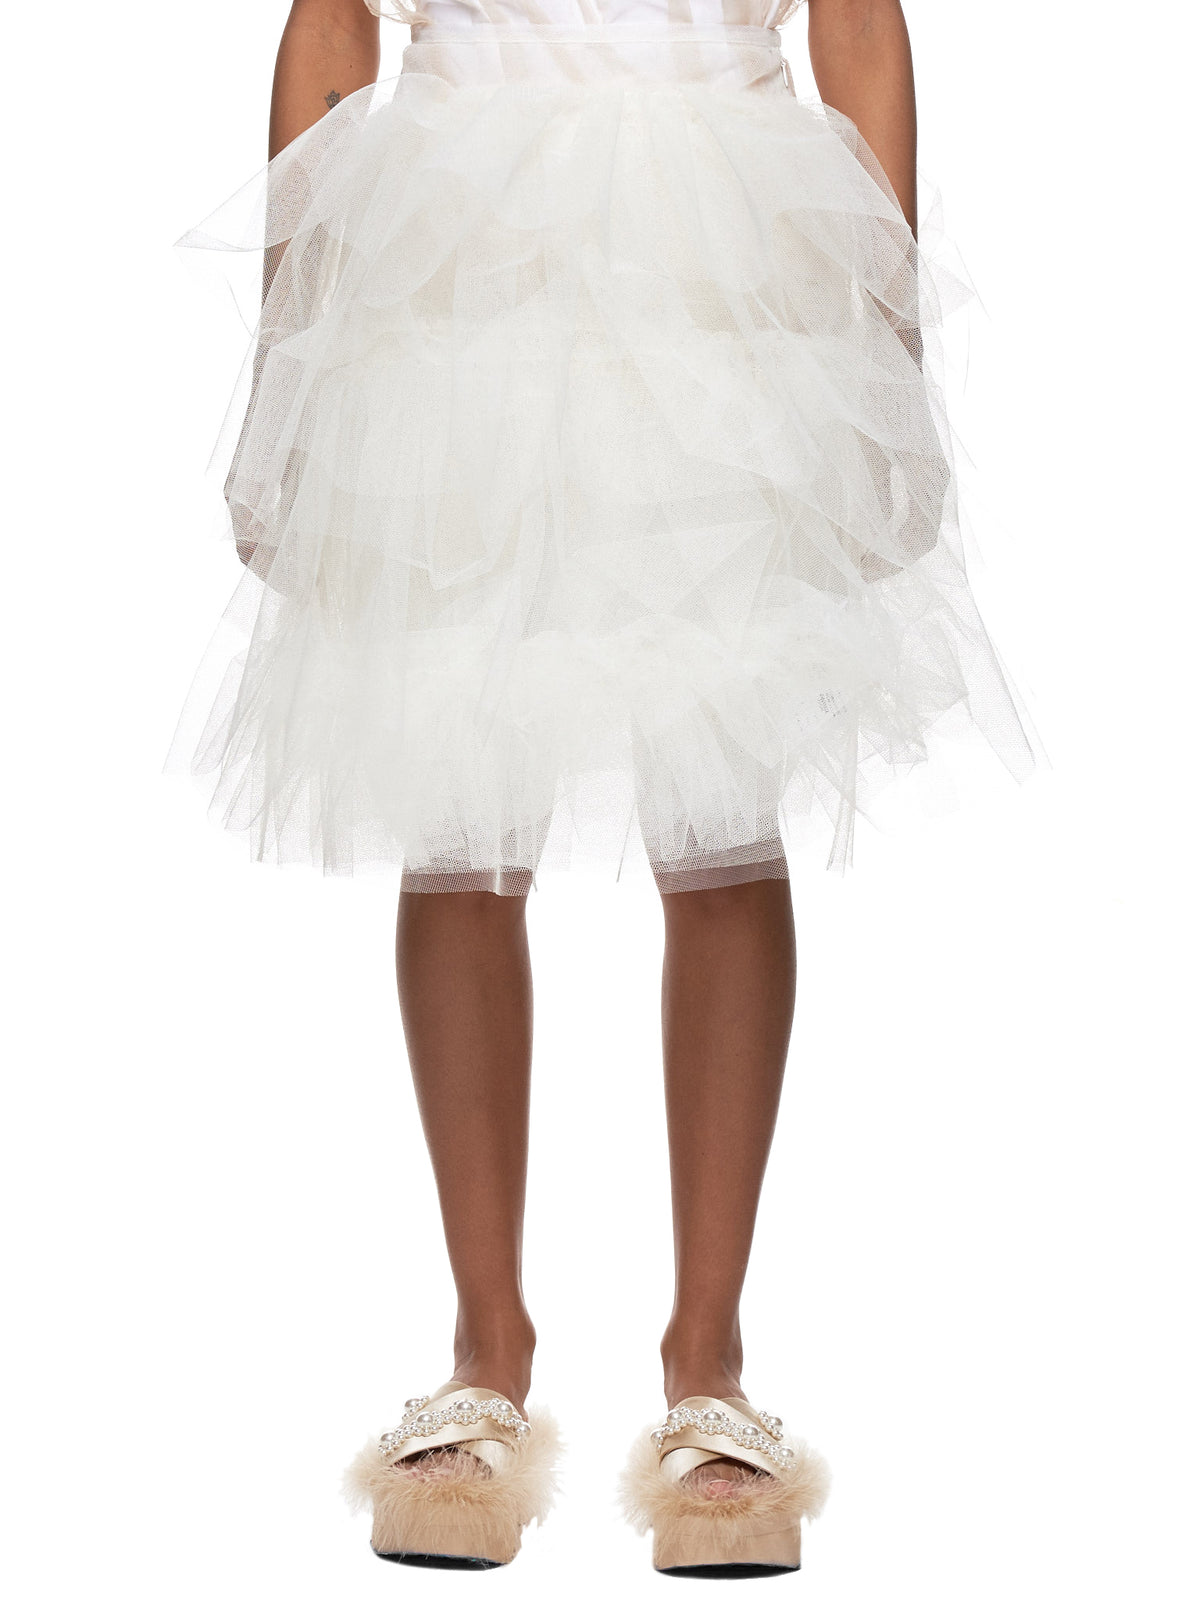 Layered Tulle Skirt (3313-0035-IVORY)